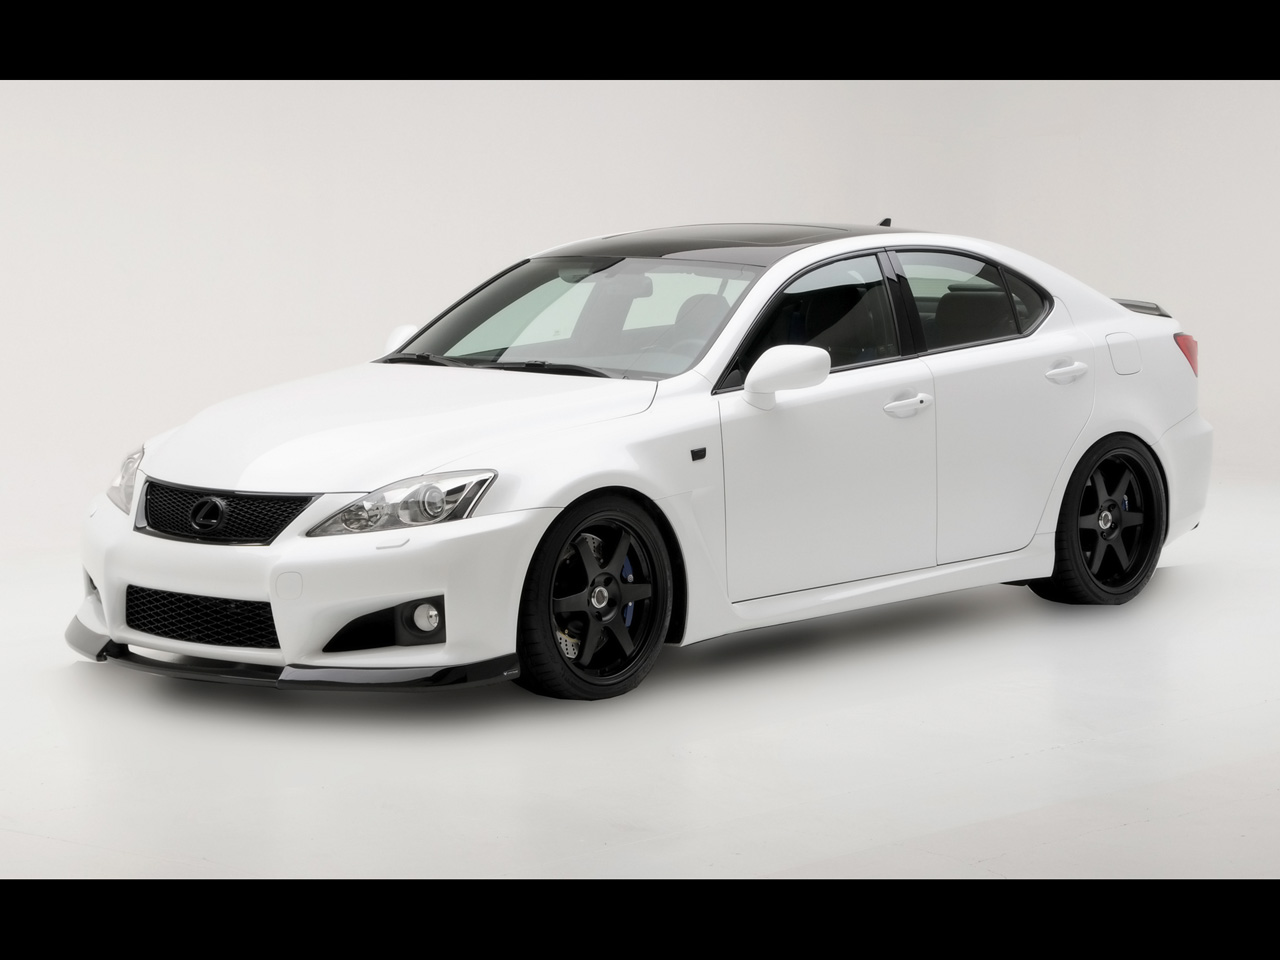 2009 Lexus Is F #14